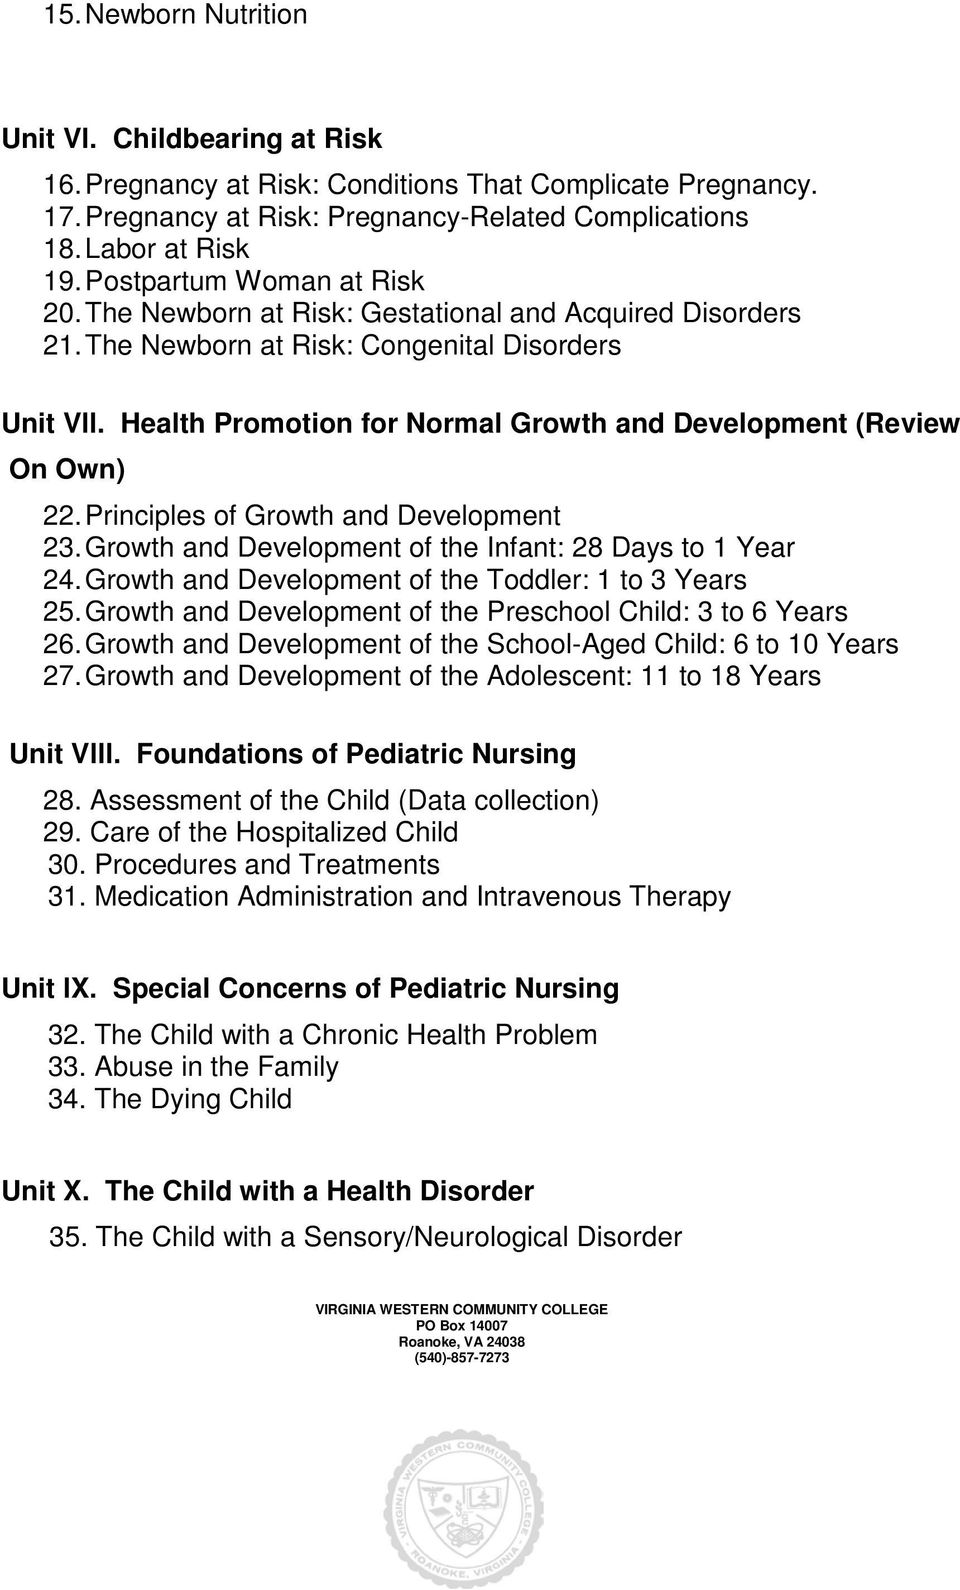 Health Promotion for Normal Growth and Development (Review On Own) 22. Principles of Growth and Development 23. Growth and Development of the Infant: 28 Days to 1 Year 24.